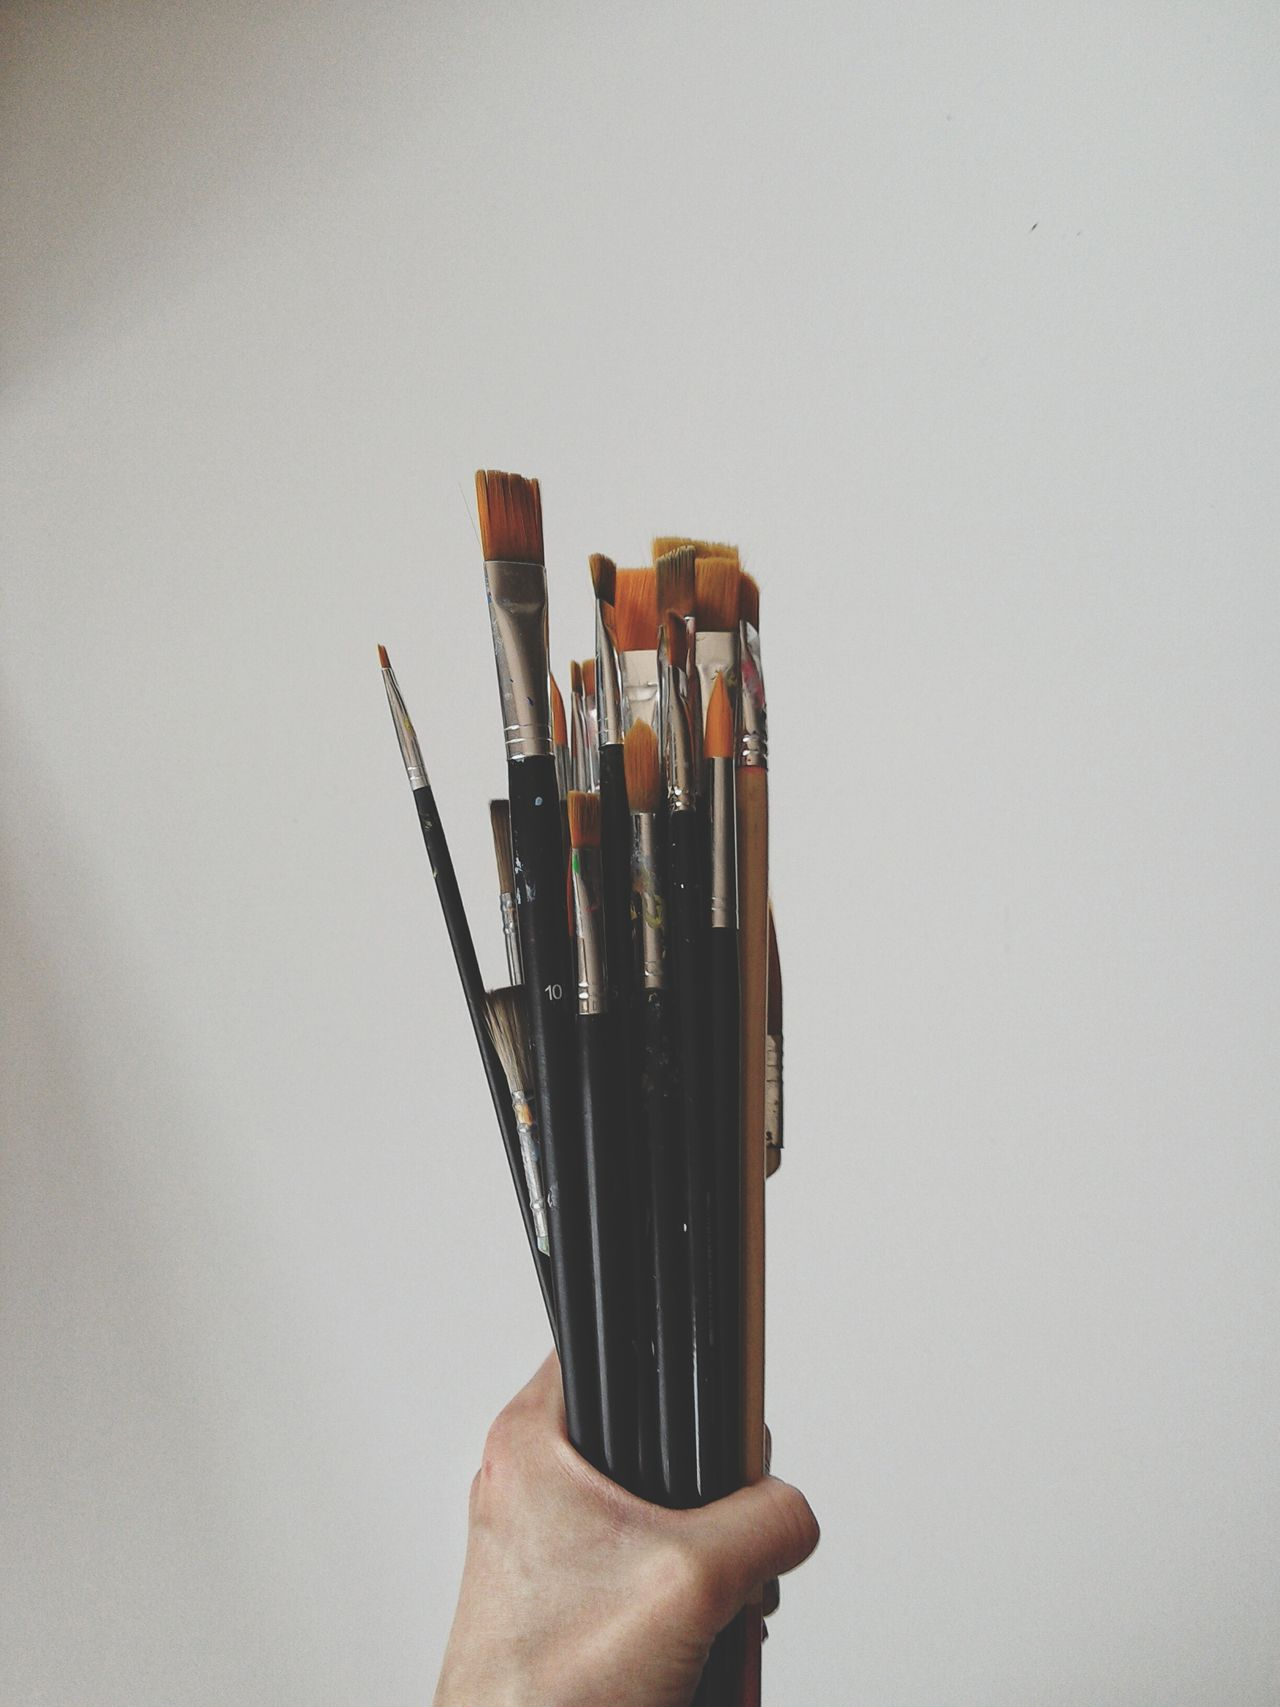 Human Hand Paintbrush Holding Large Group Of Objects Variety Hobby Painting Tools White Canvas White Background Studio Shot Paintbrushes Human Body Part One Person Woman Hand Fine Arts Indoors  Close-up